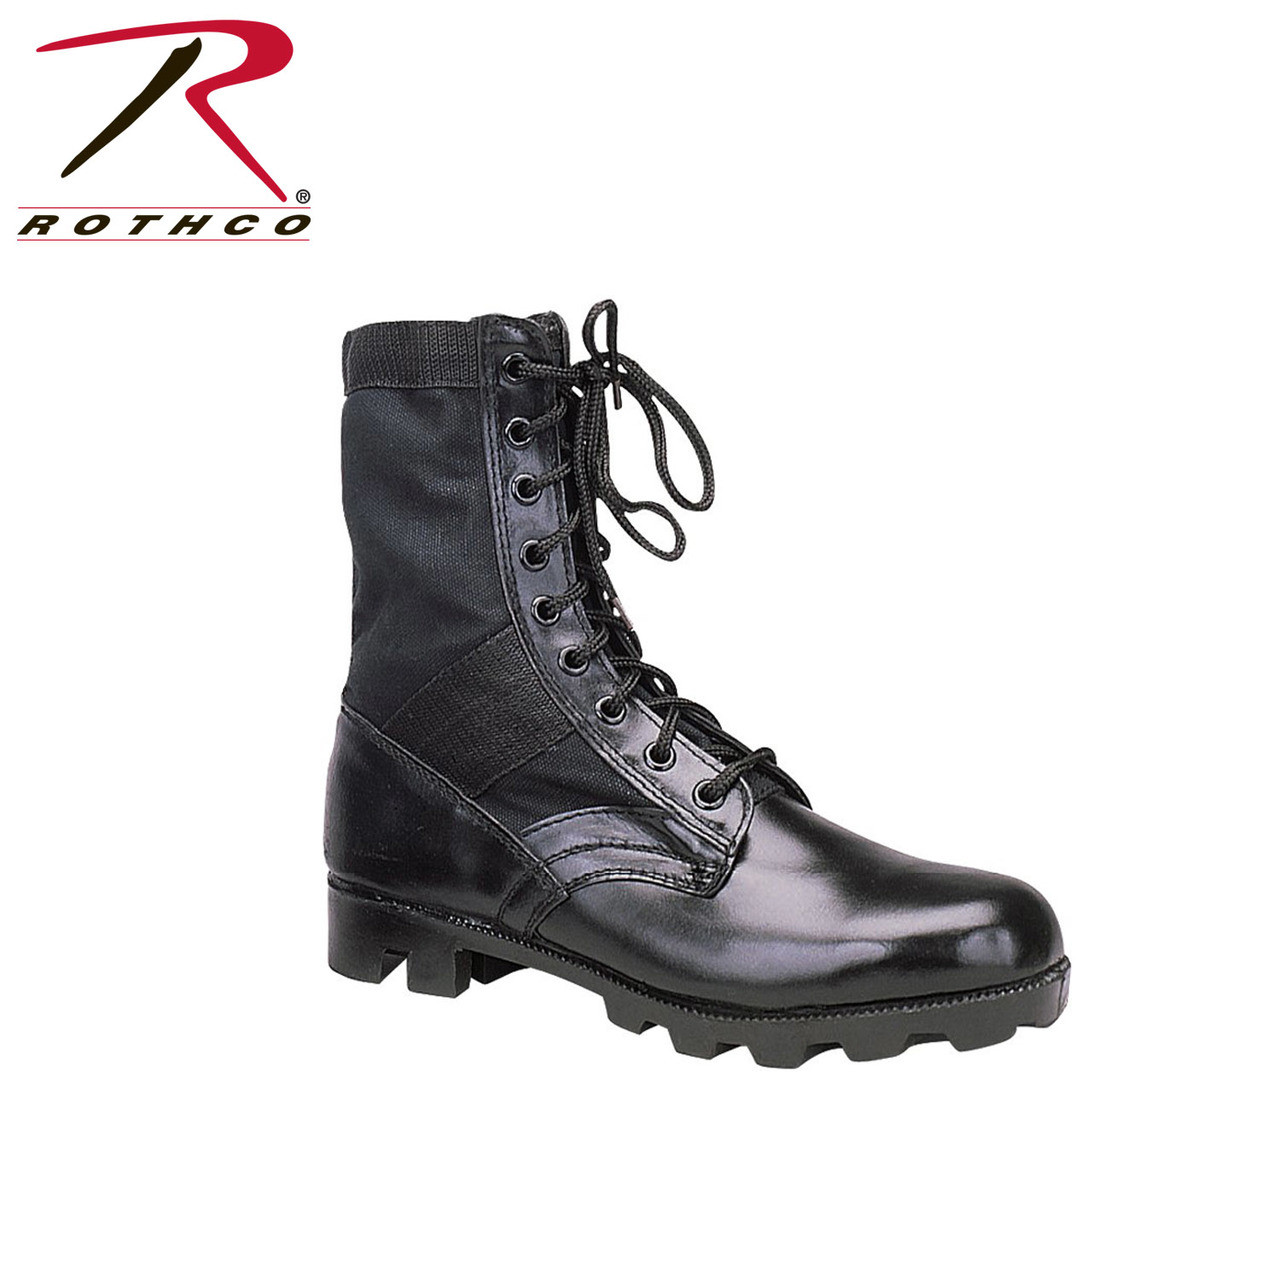 MENS ROTHCO 5094 GI STYLE SPEEDLACE COMBAT ARMY BOOTS SIZES 5 TO 15 REGULAR